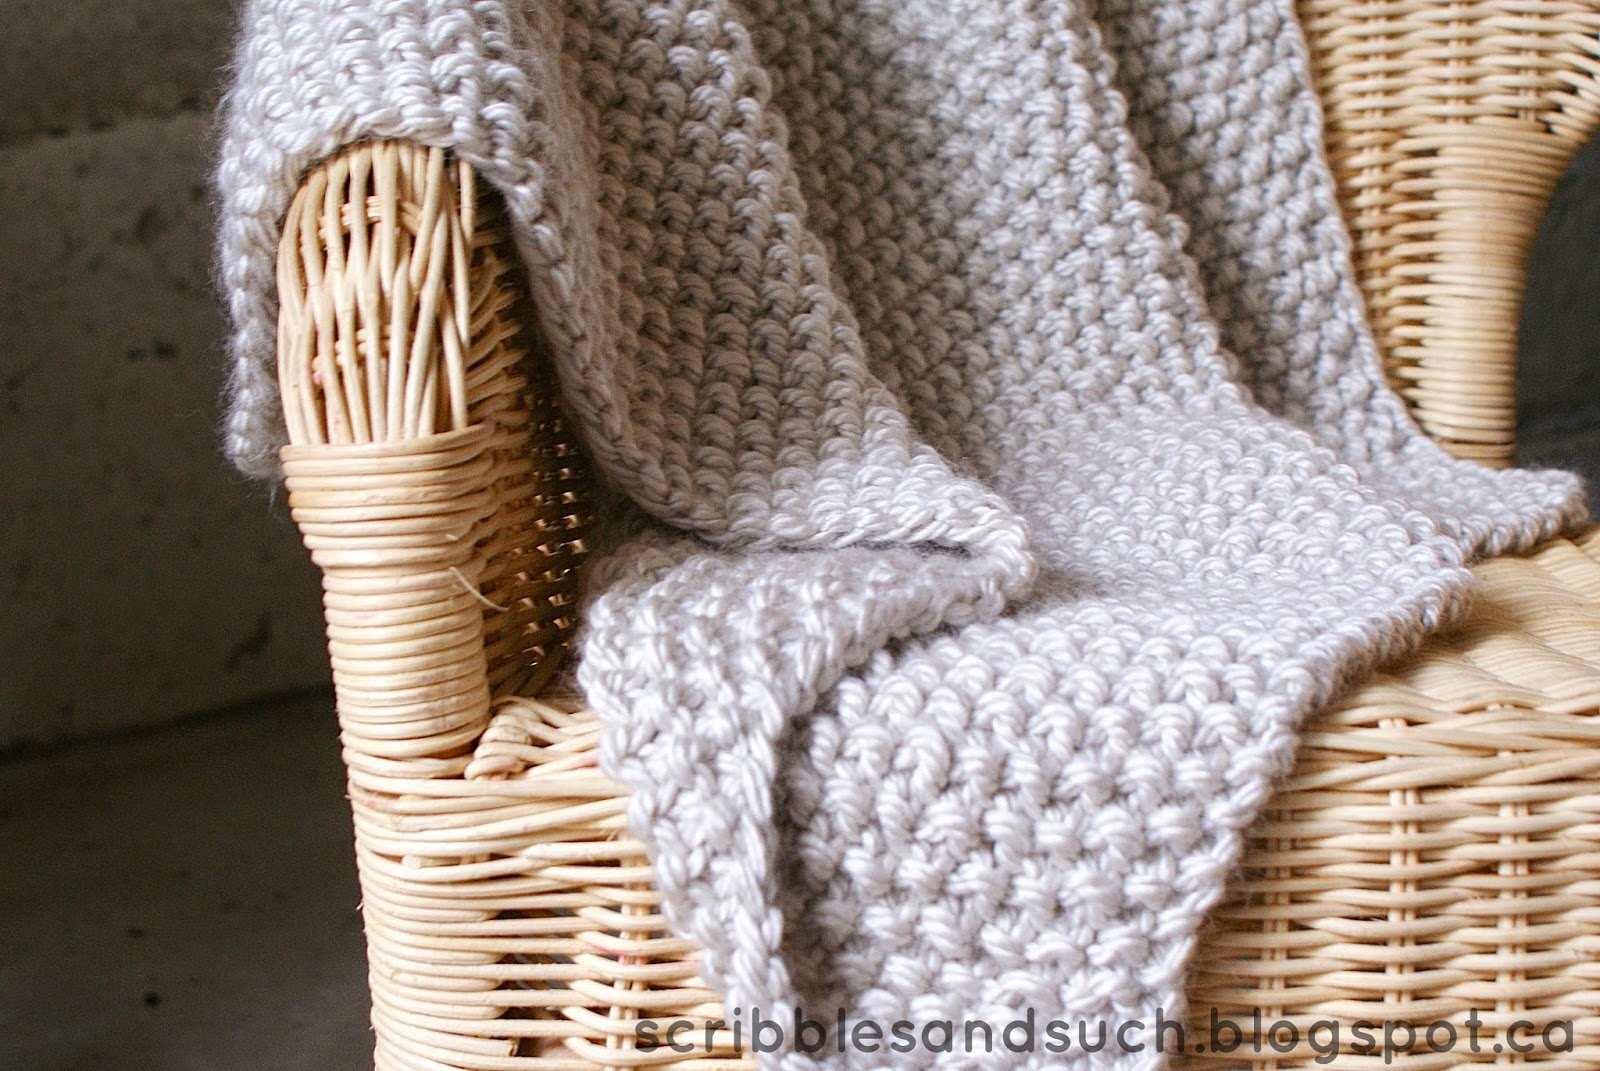 scribbles & such: Chunky Knitted Baby Blanket